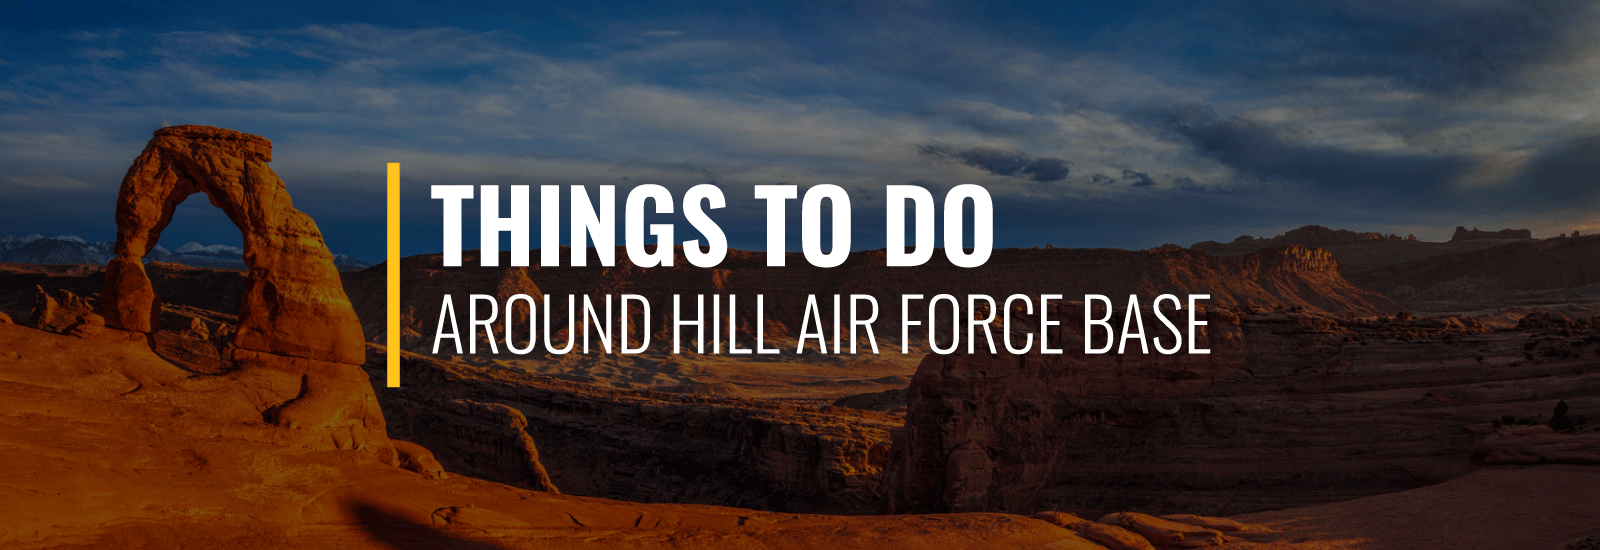 Things to Do Near Hill Air Force Base